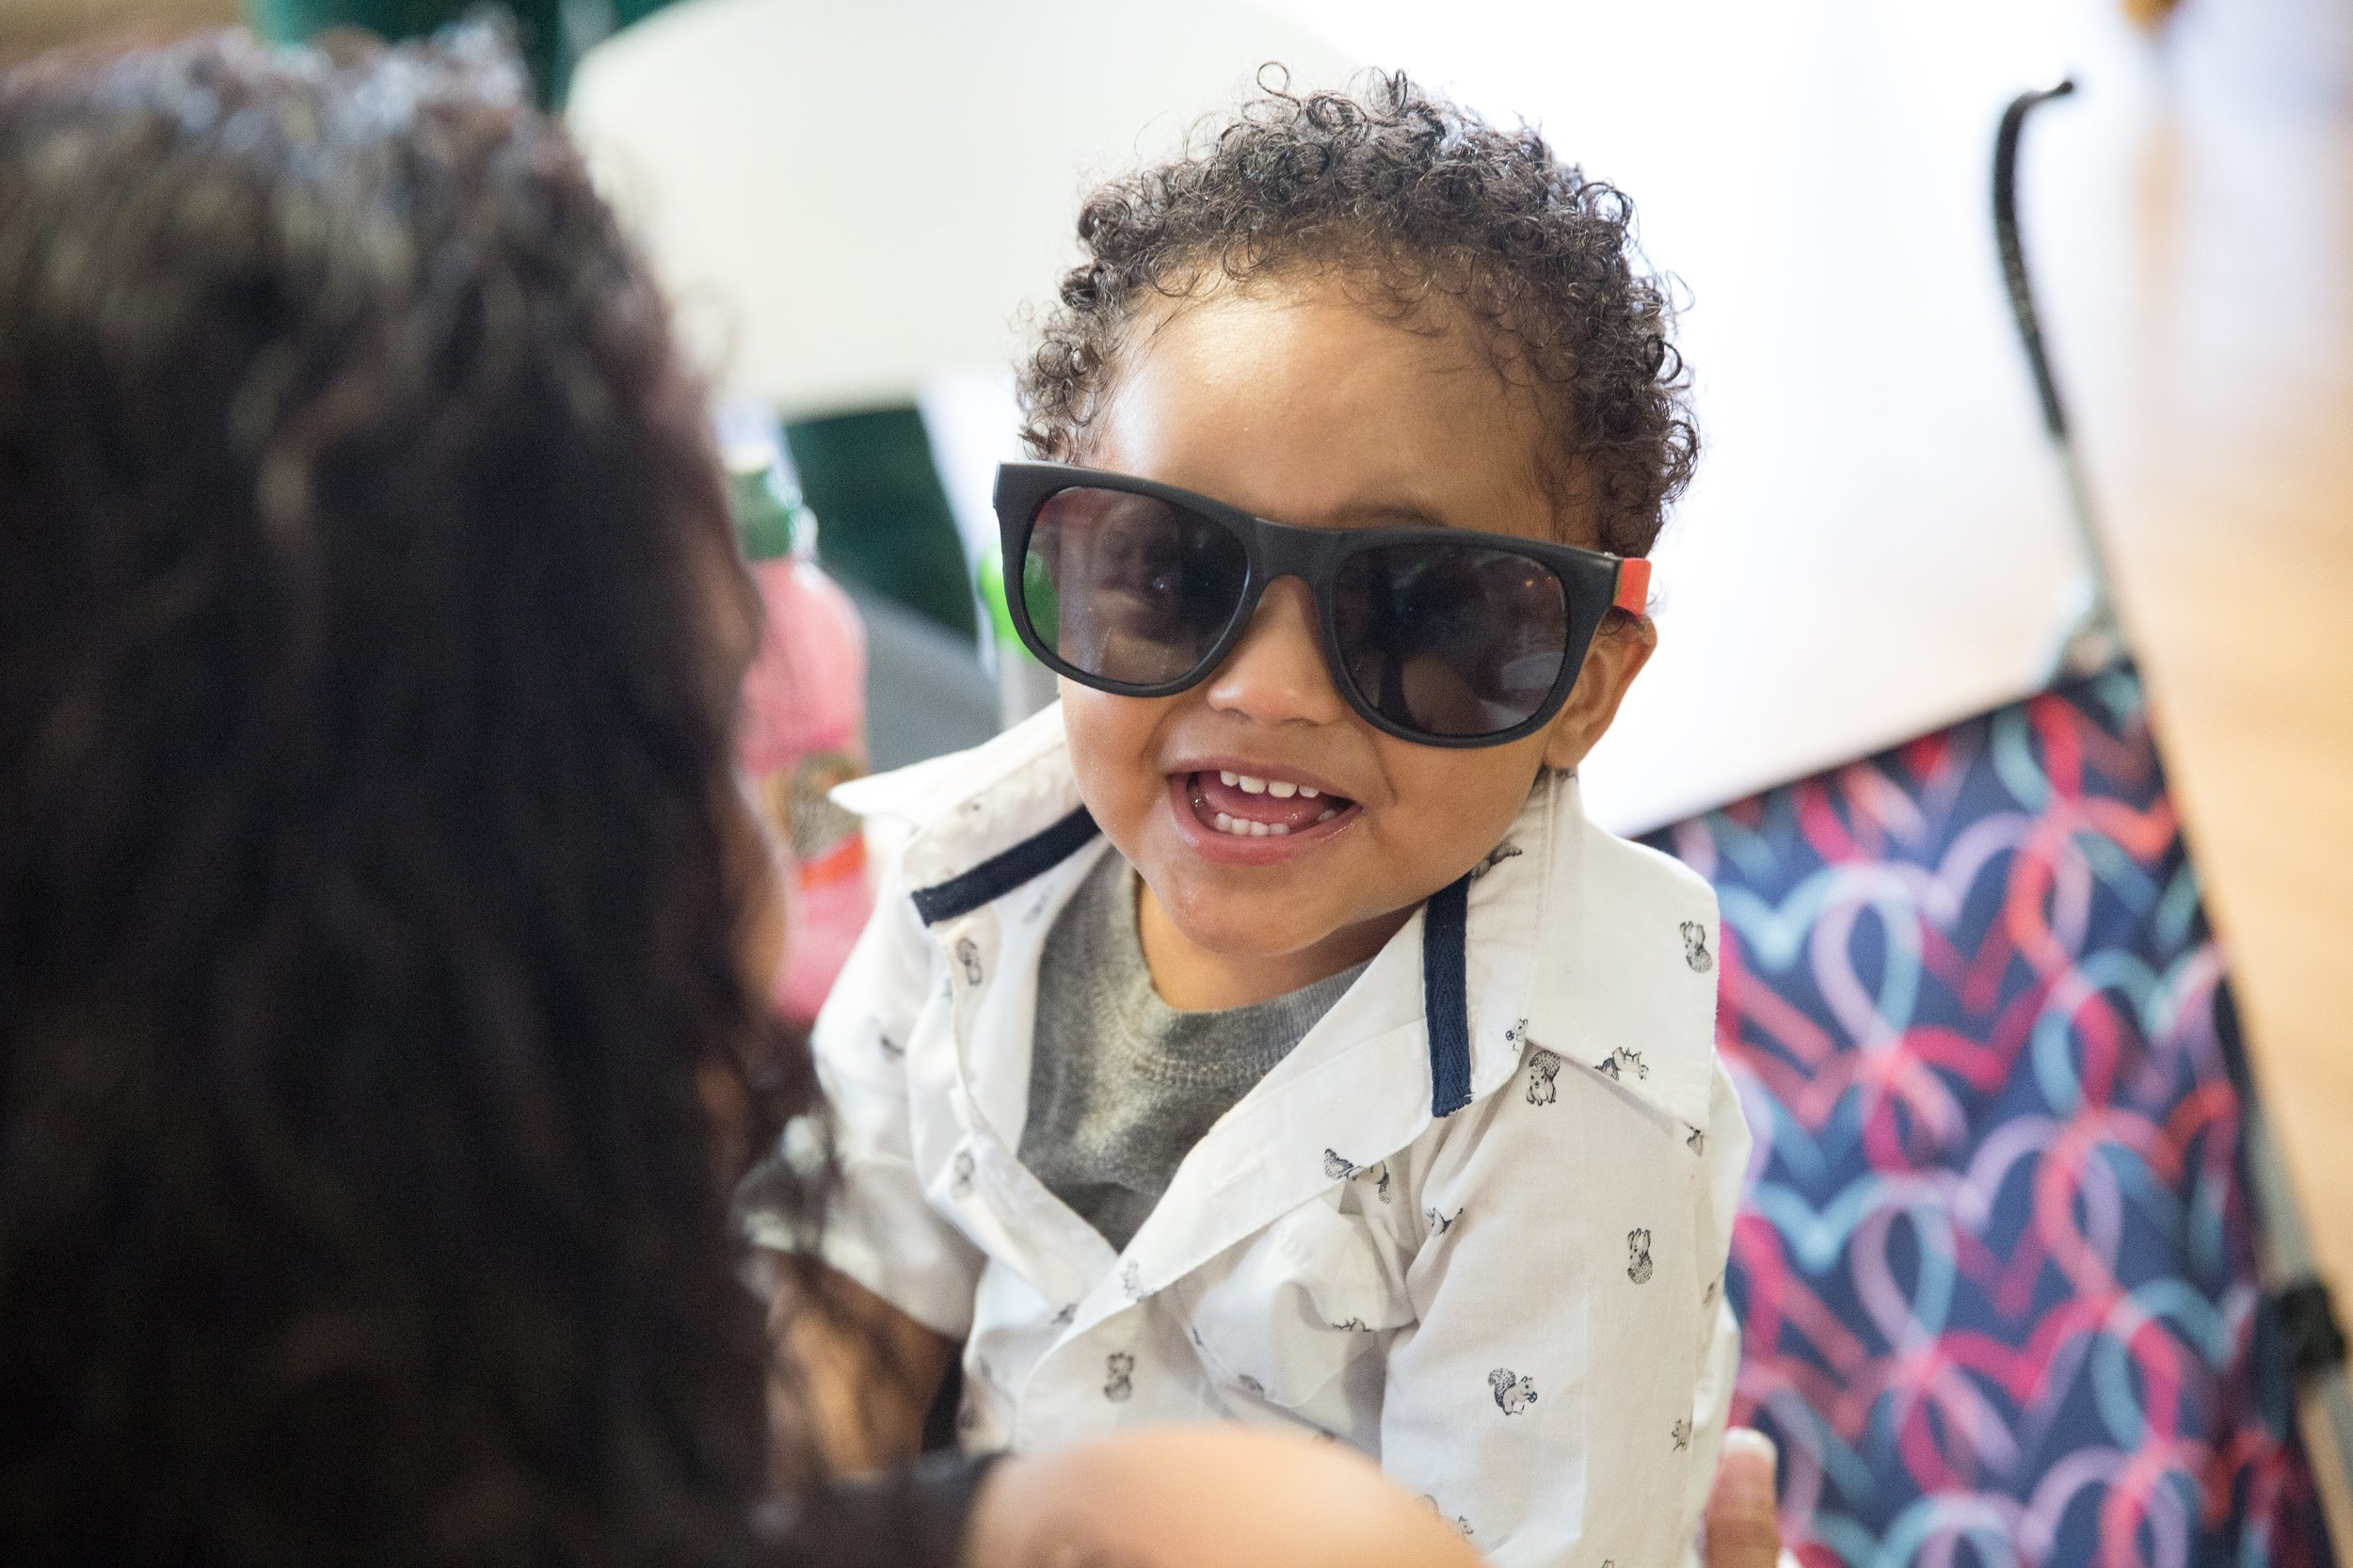 A smiling toddler wearing sunglasses looks over an adult's shoulder.